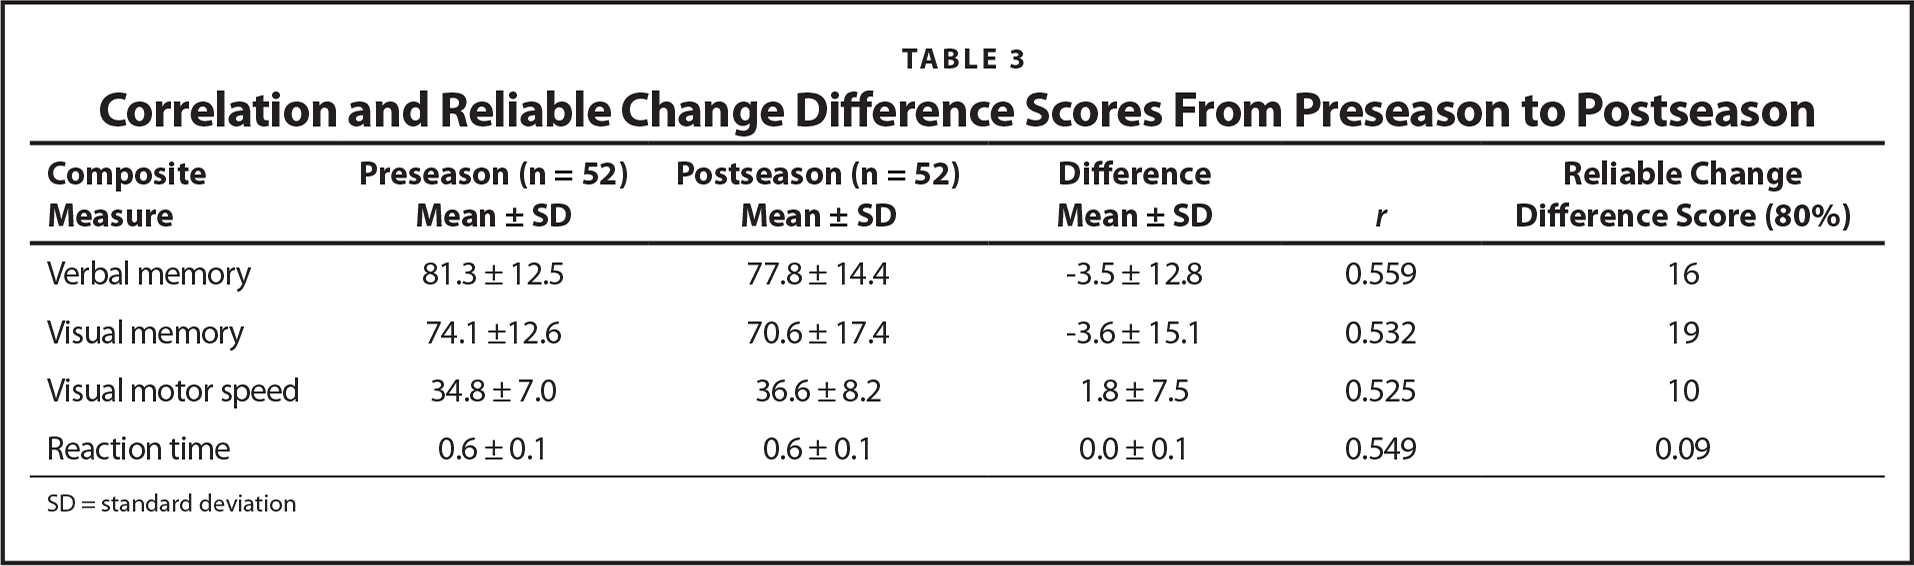 Correlation and Reliable Change Difference Scores From Preseason to Postseason